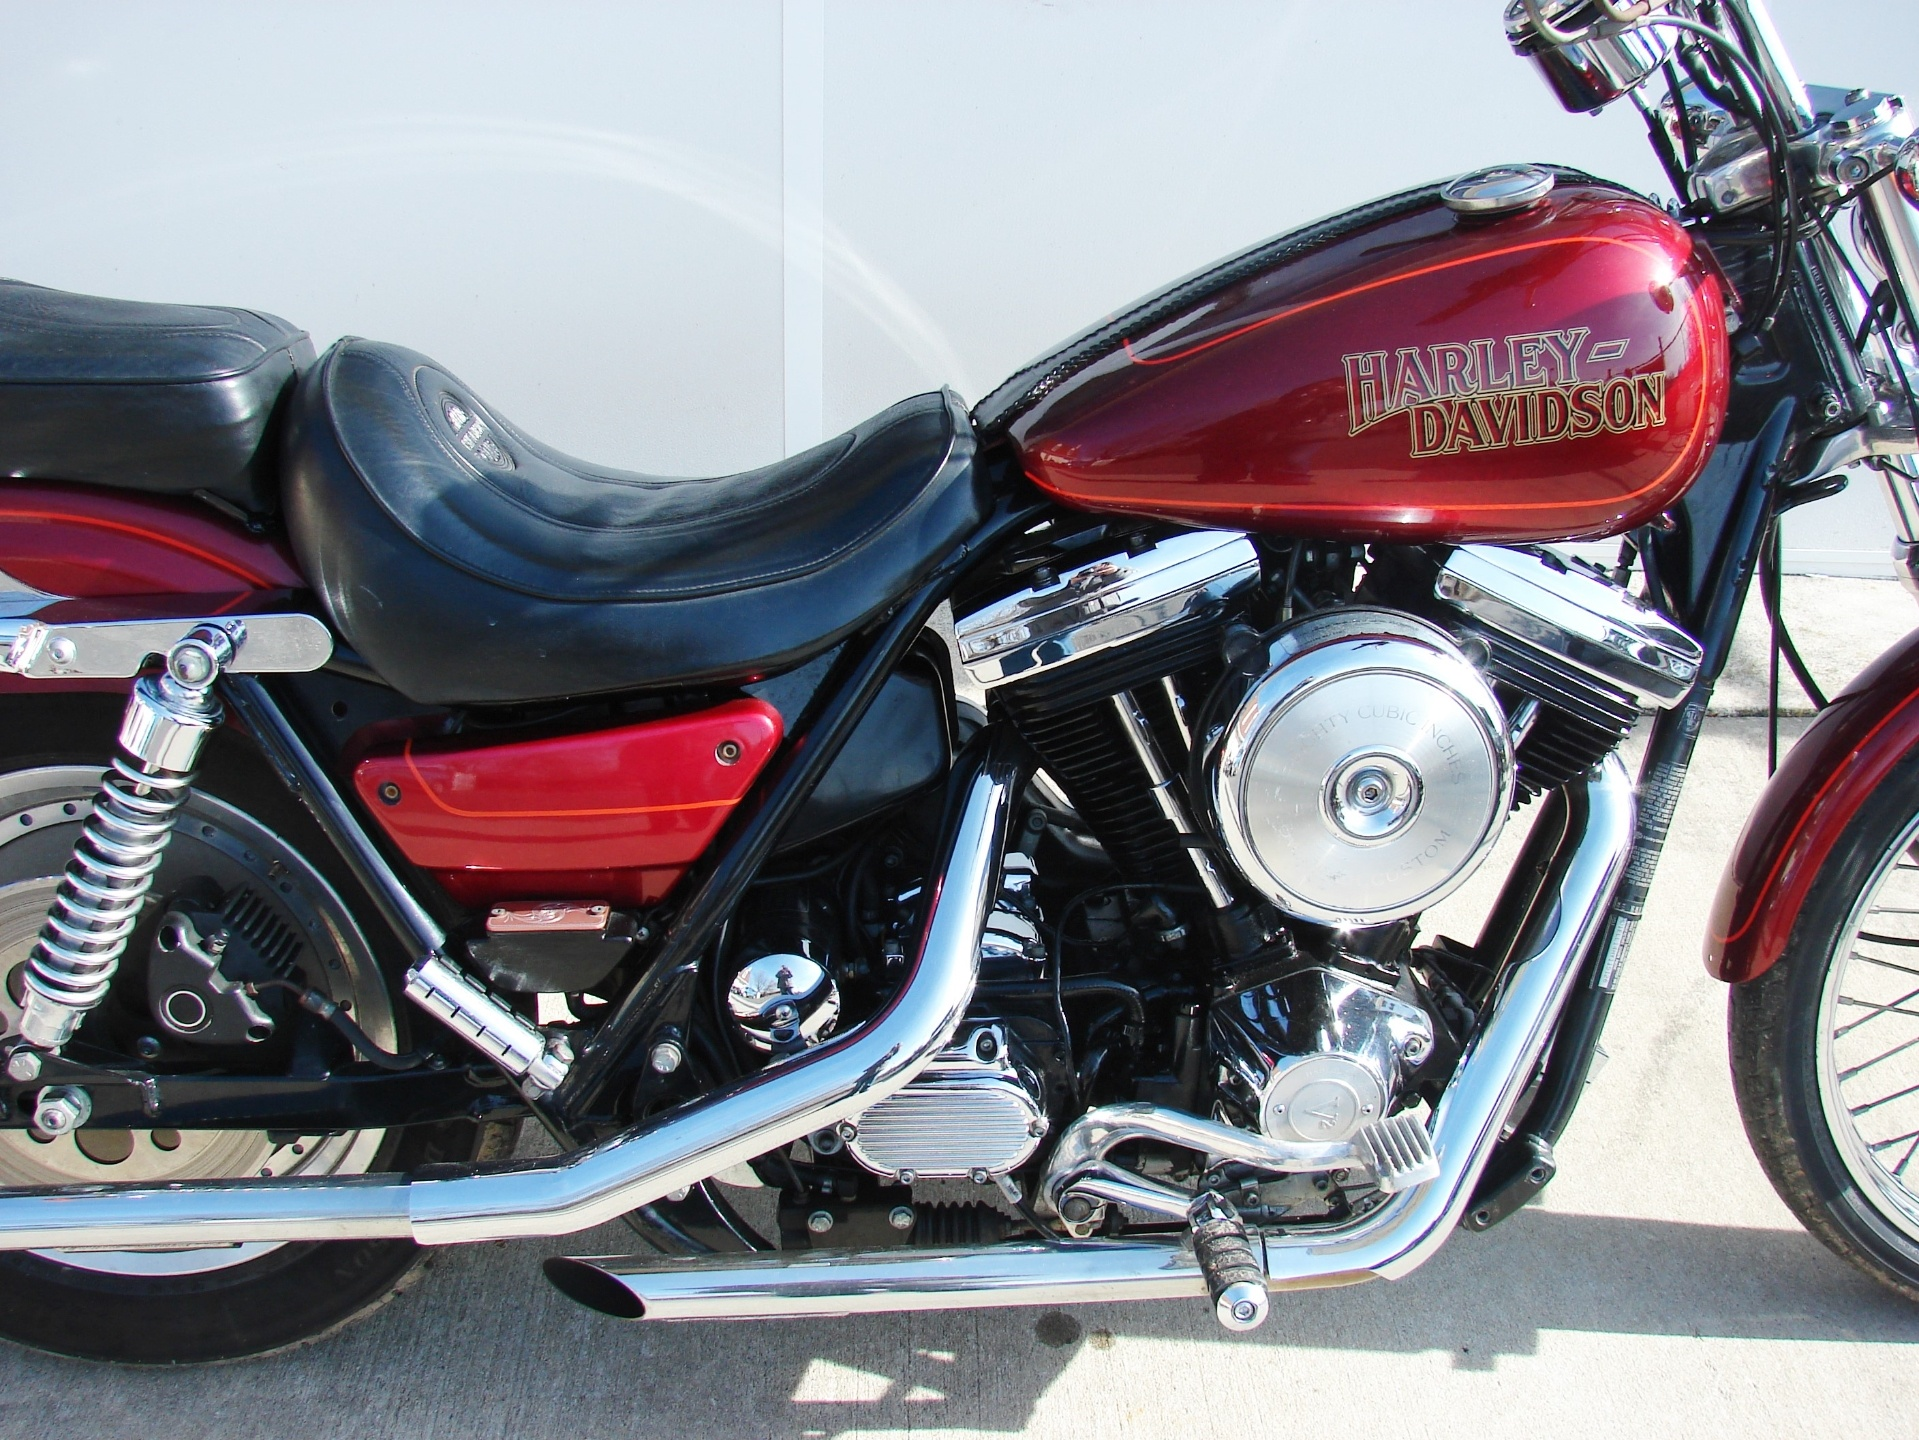 Used 1987 harley davidson fxr custom with 1340cc motor for Harley davidson motor credit